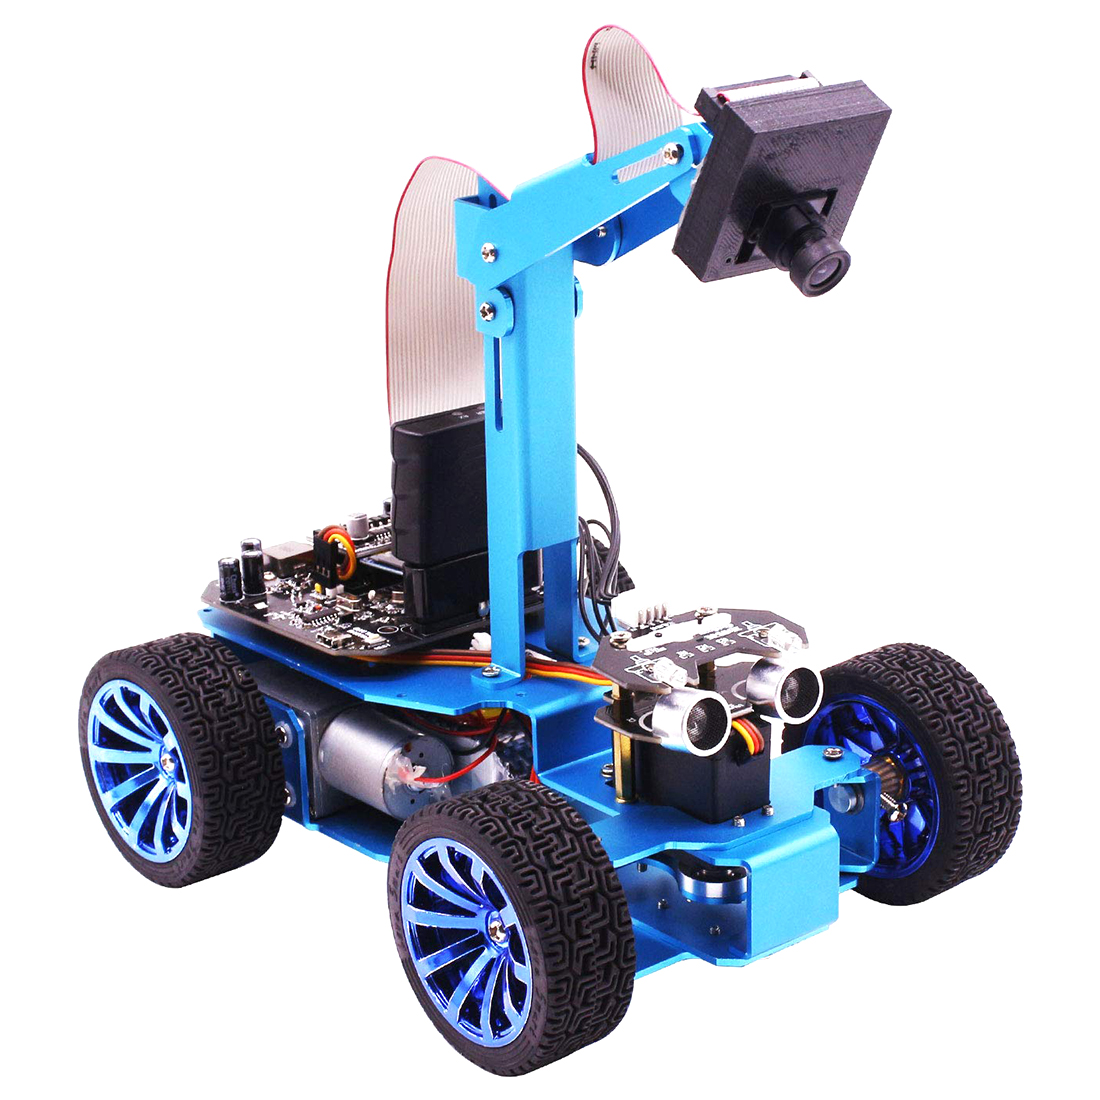 Hot STM32 Visual Robot OV7670 Camera Tracking OLED Screen Independent Steering Robotics High-Power Motor For Children Kids Toys